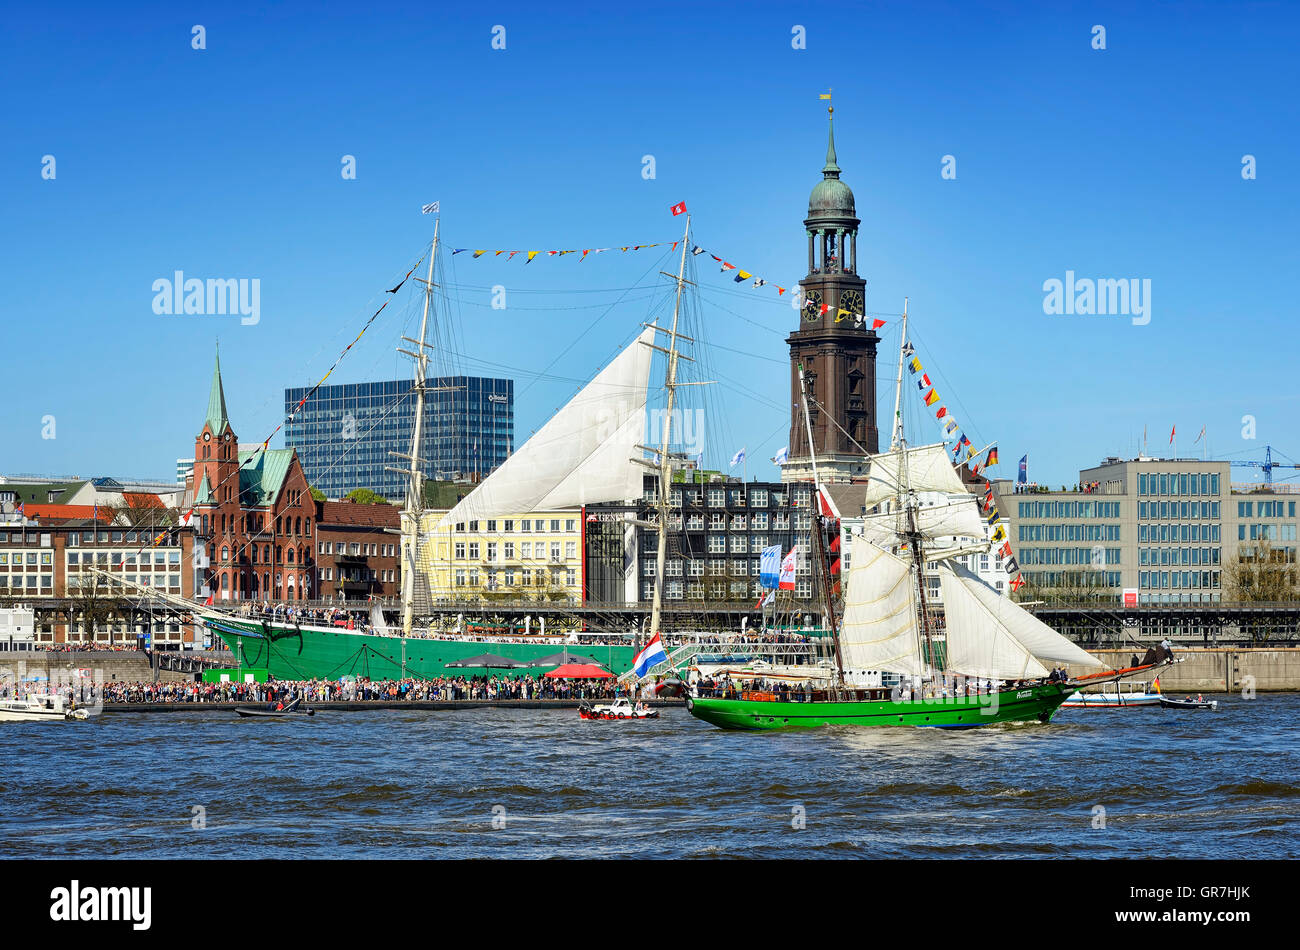 Sailing Ship Avatar At Hamburg Port Anniversary In Germany - Stock Image